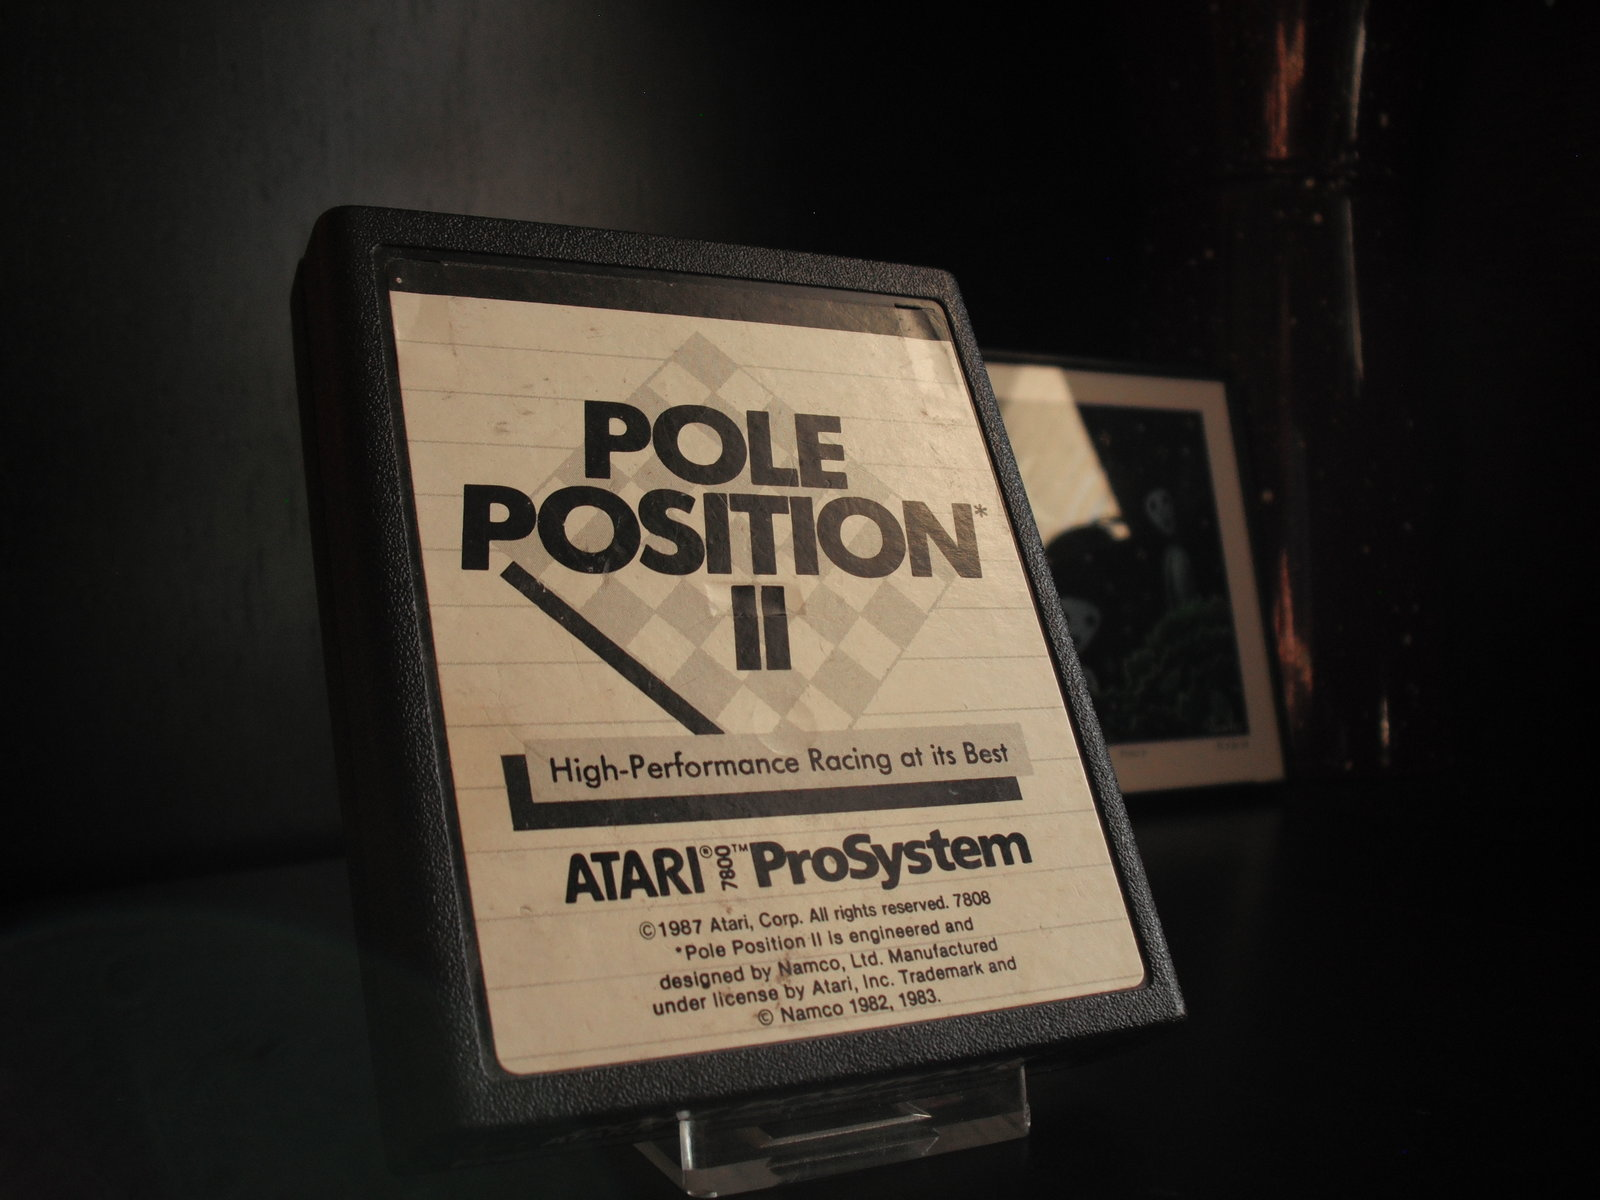 Pole Position II (Atari)